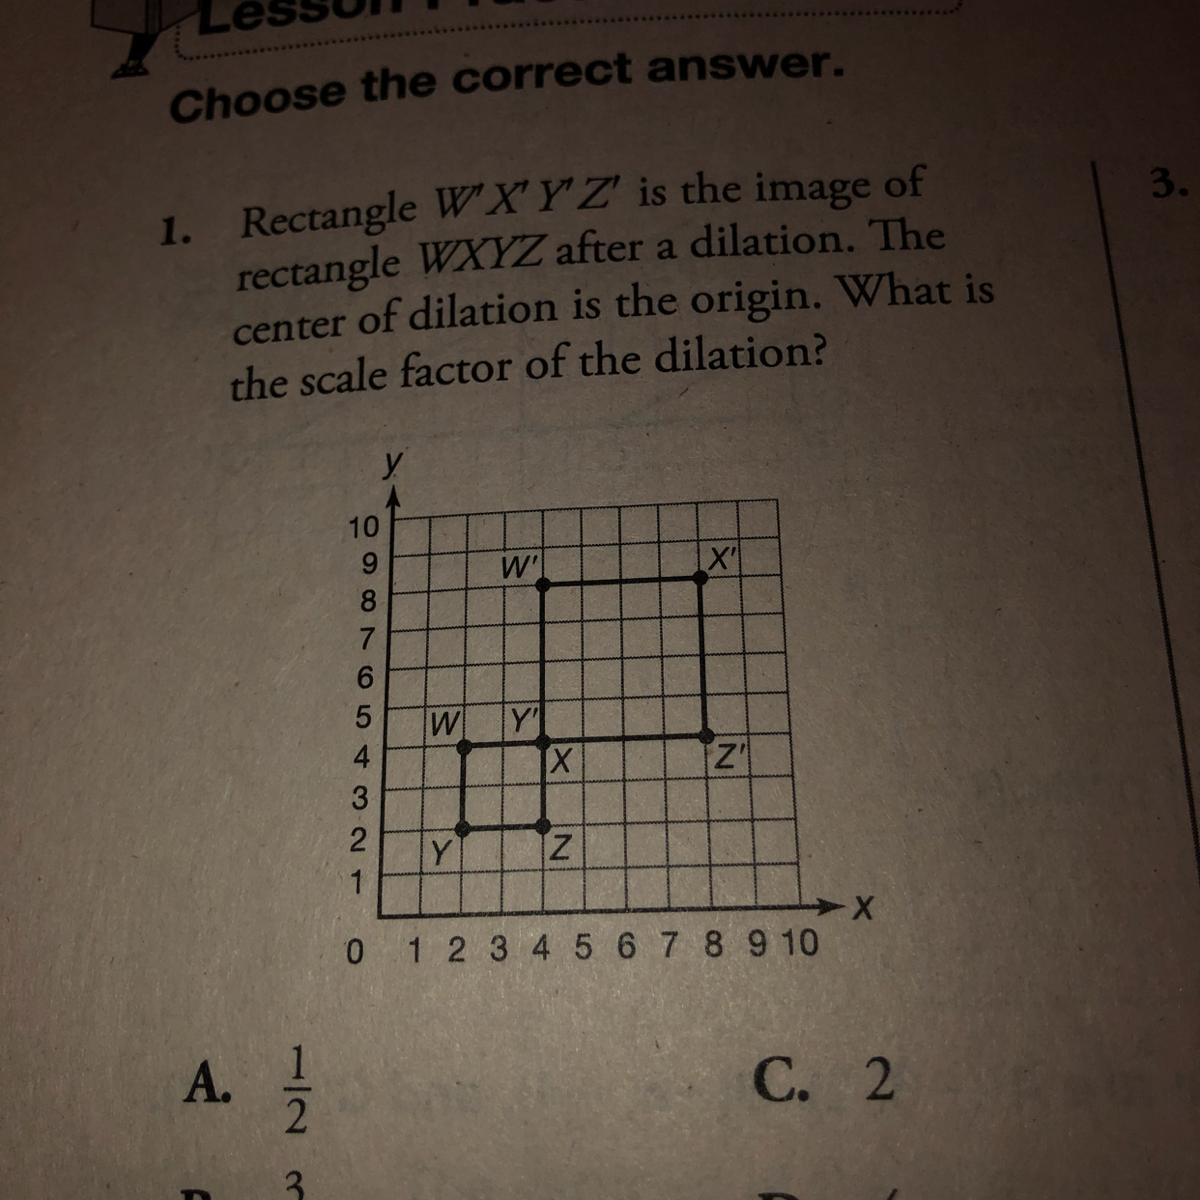 What Is The Scale Factor Of The Dilation